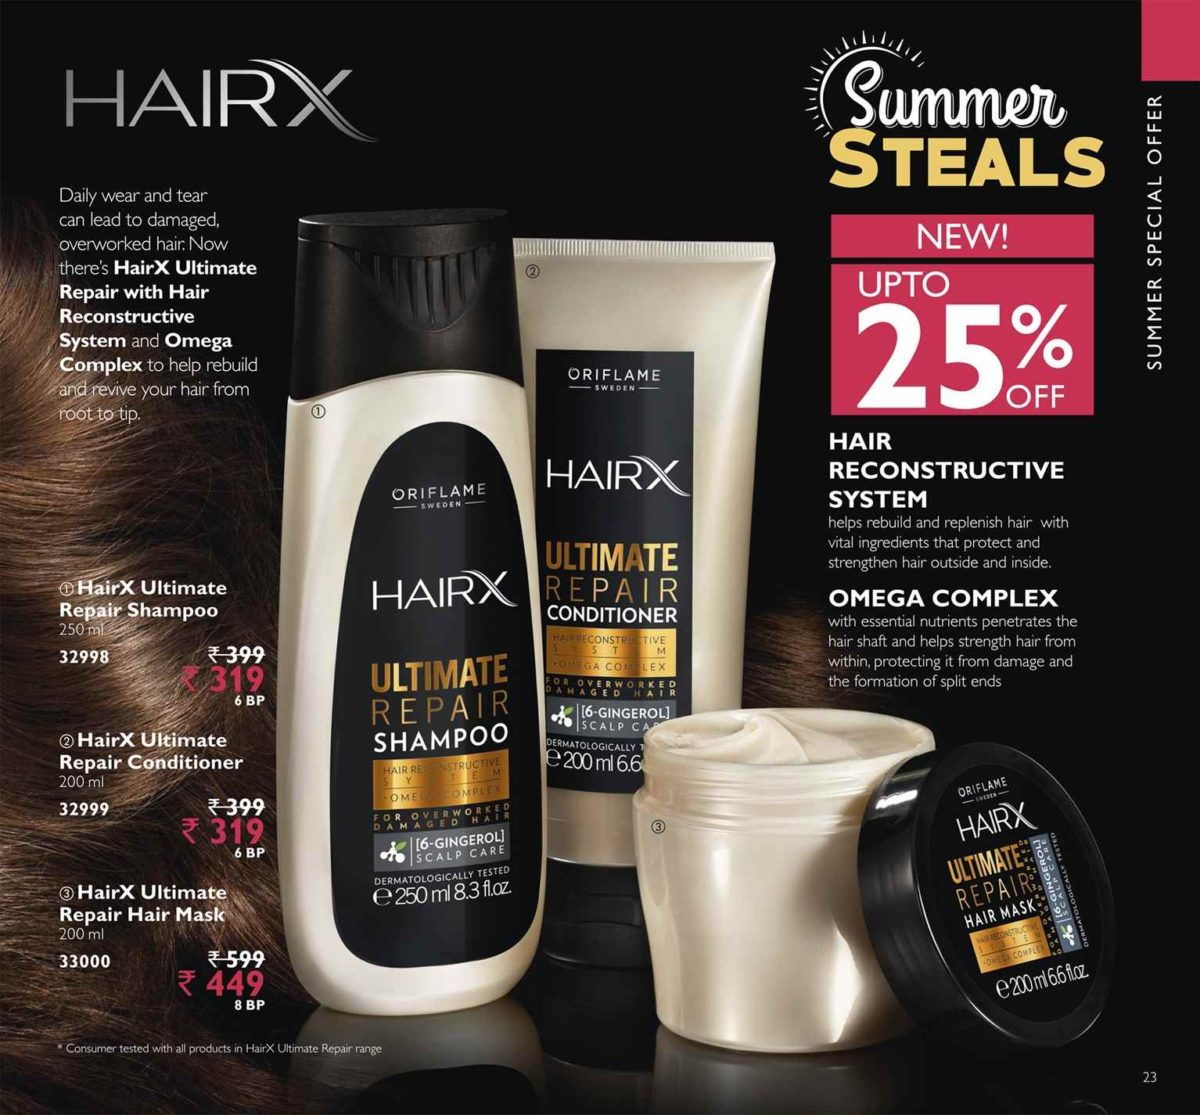 Hair spa-Because damaged hair can be beautiful again